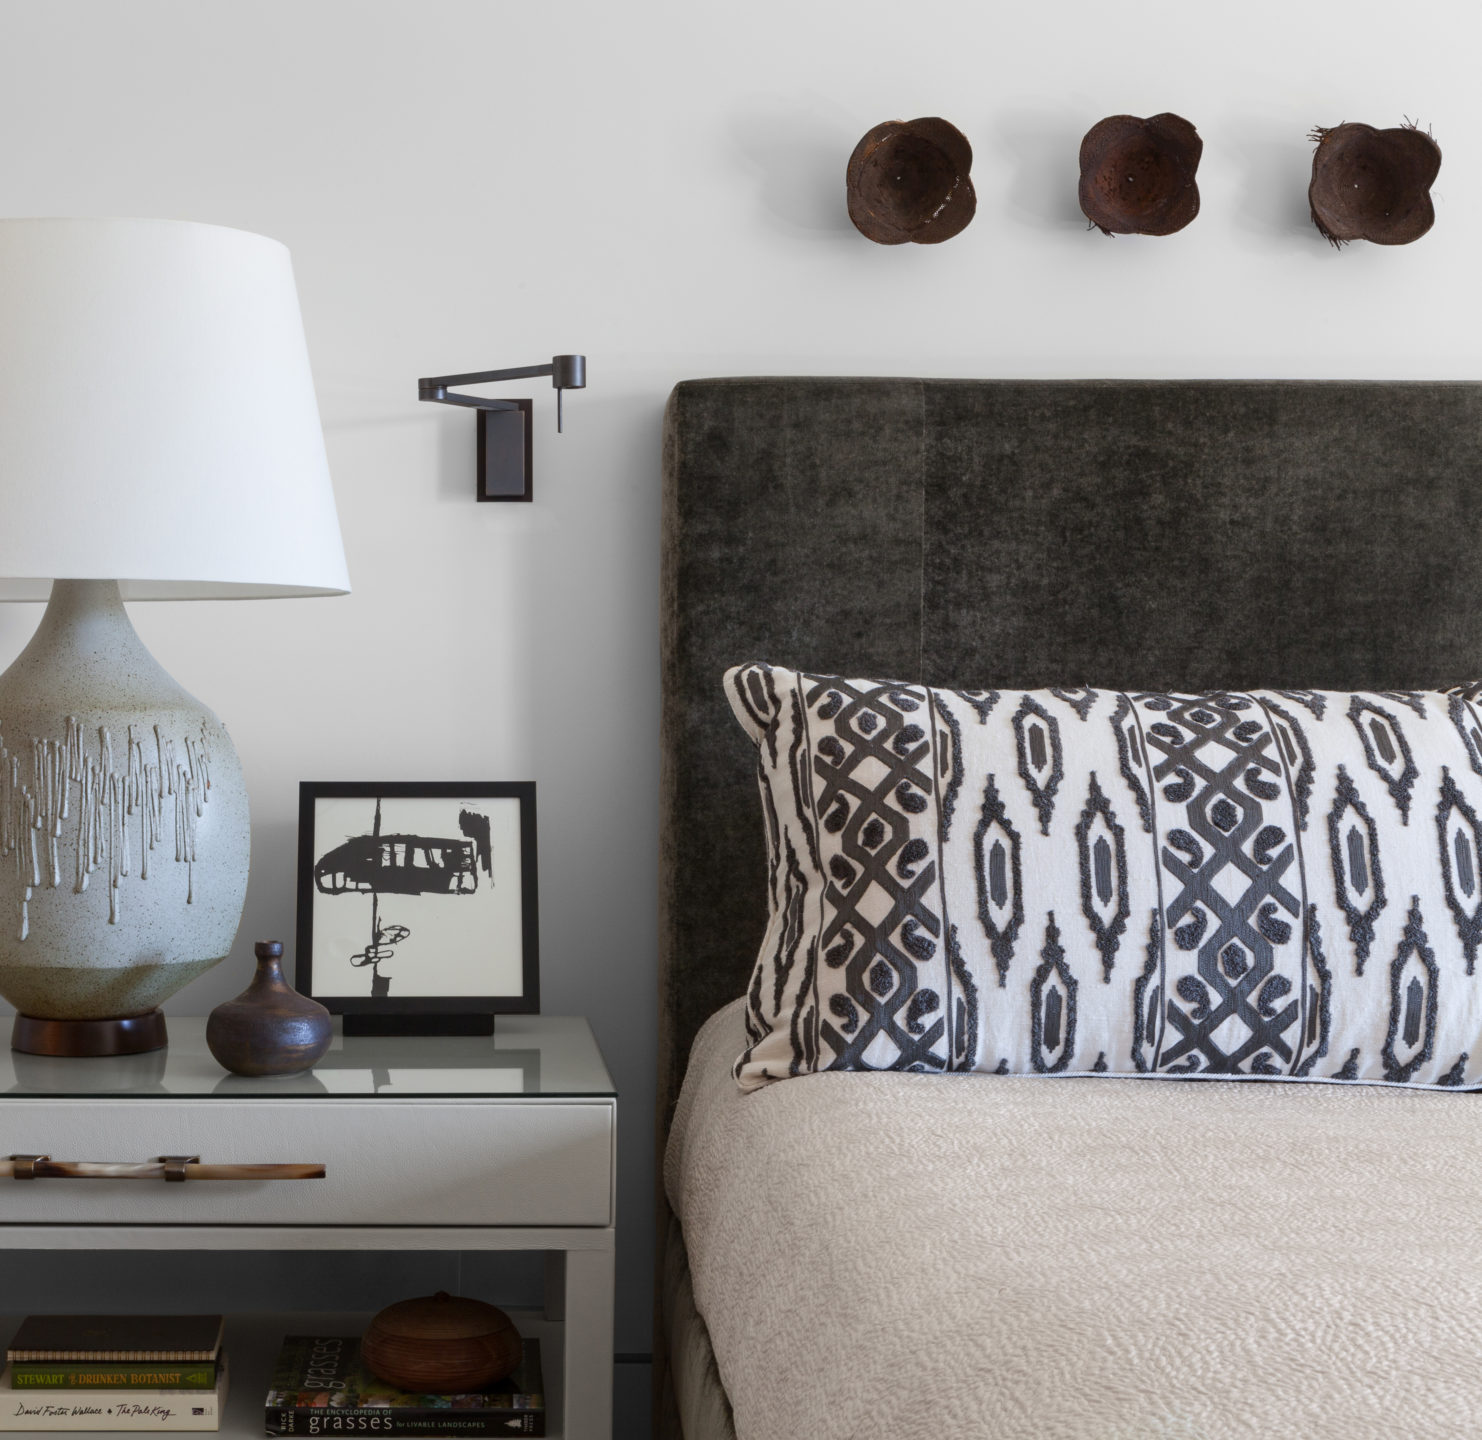 Master bedroom vignette of bed and nightstand